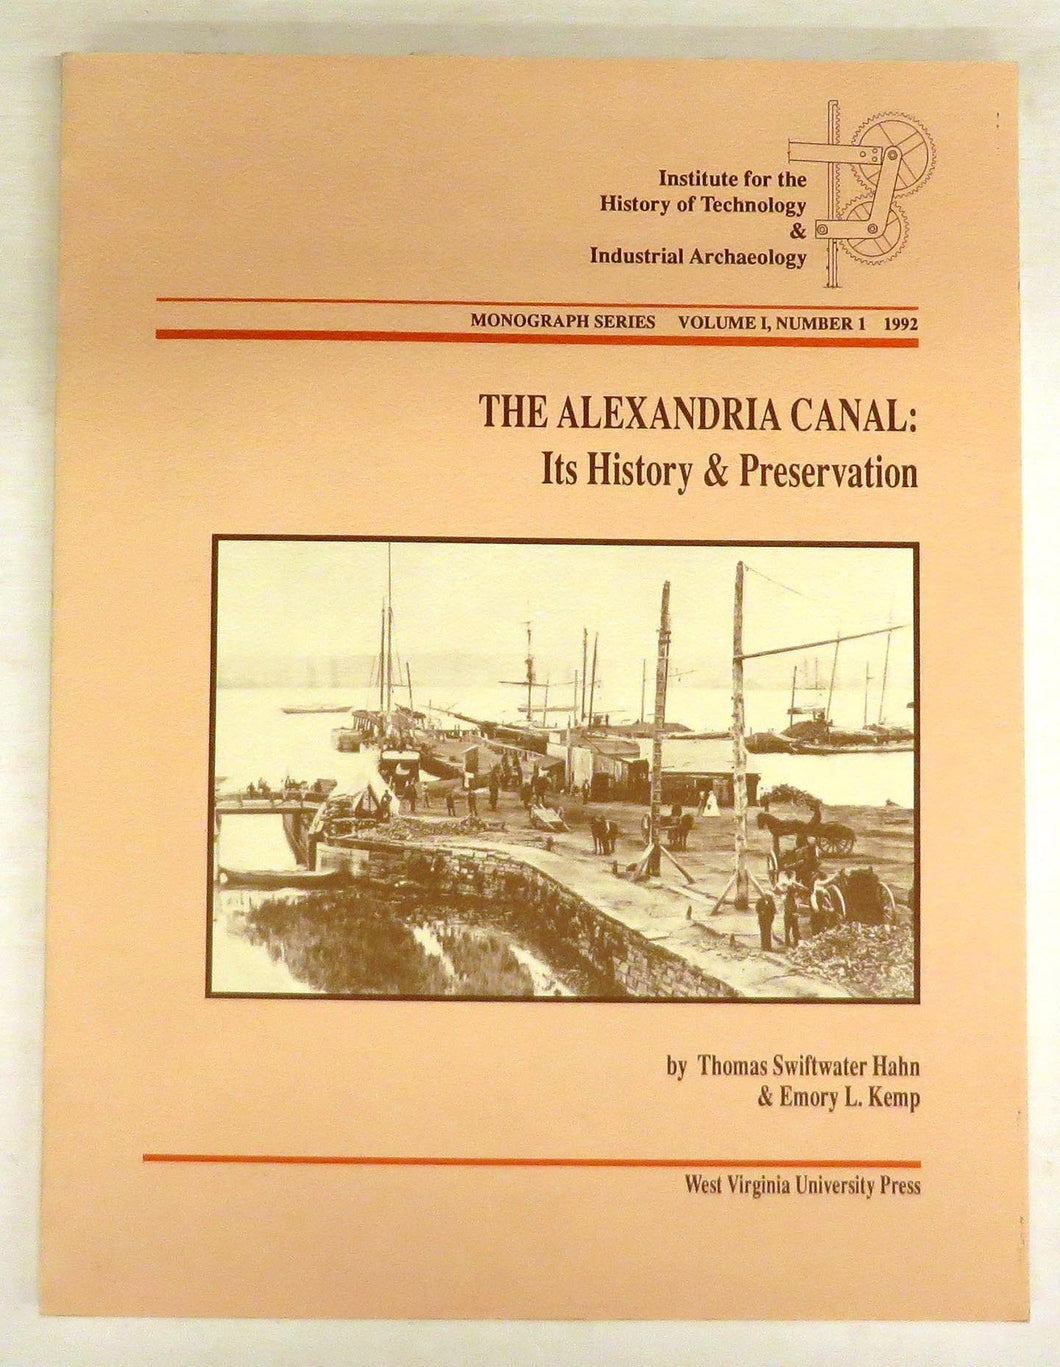 The Alexandria Canal: Its History & Preservation